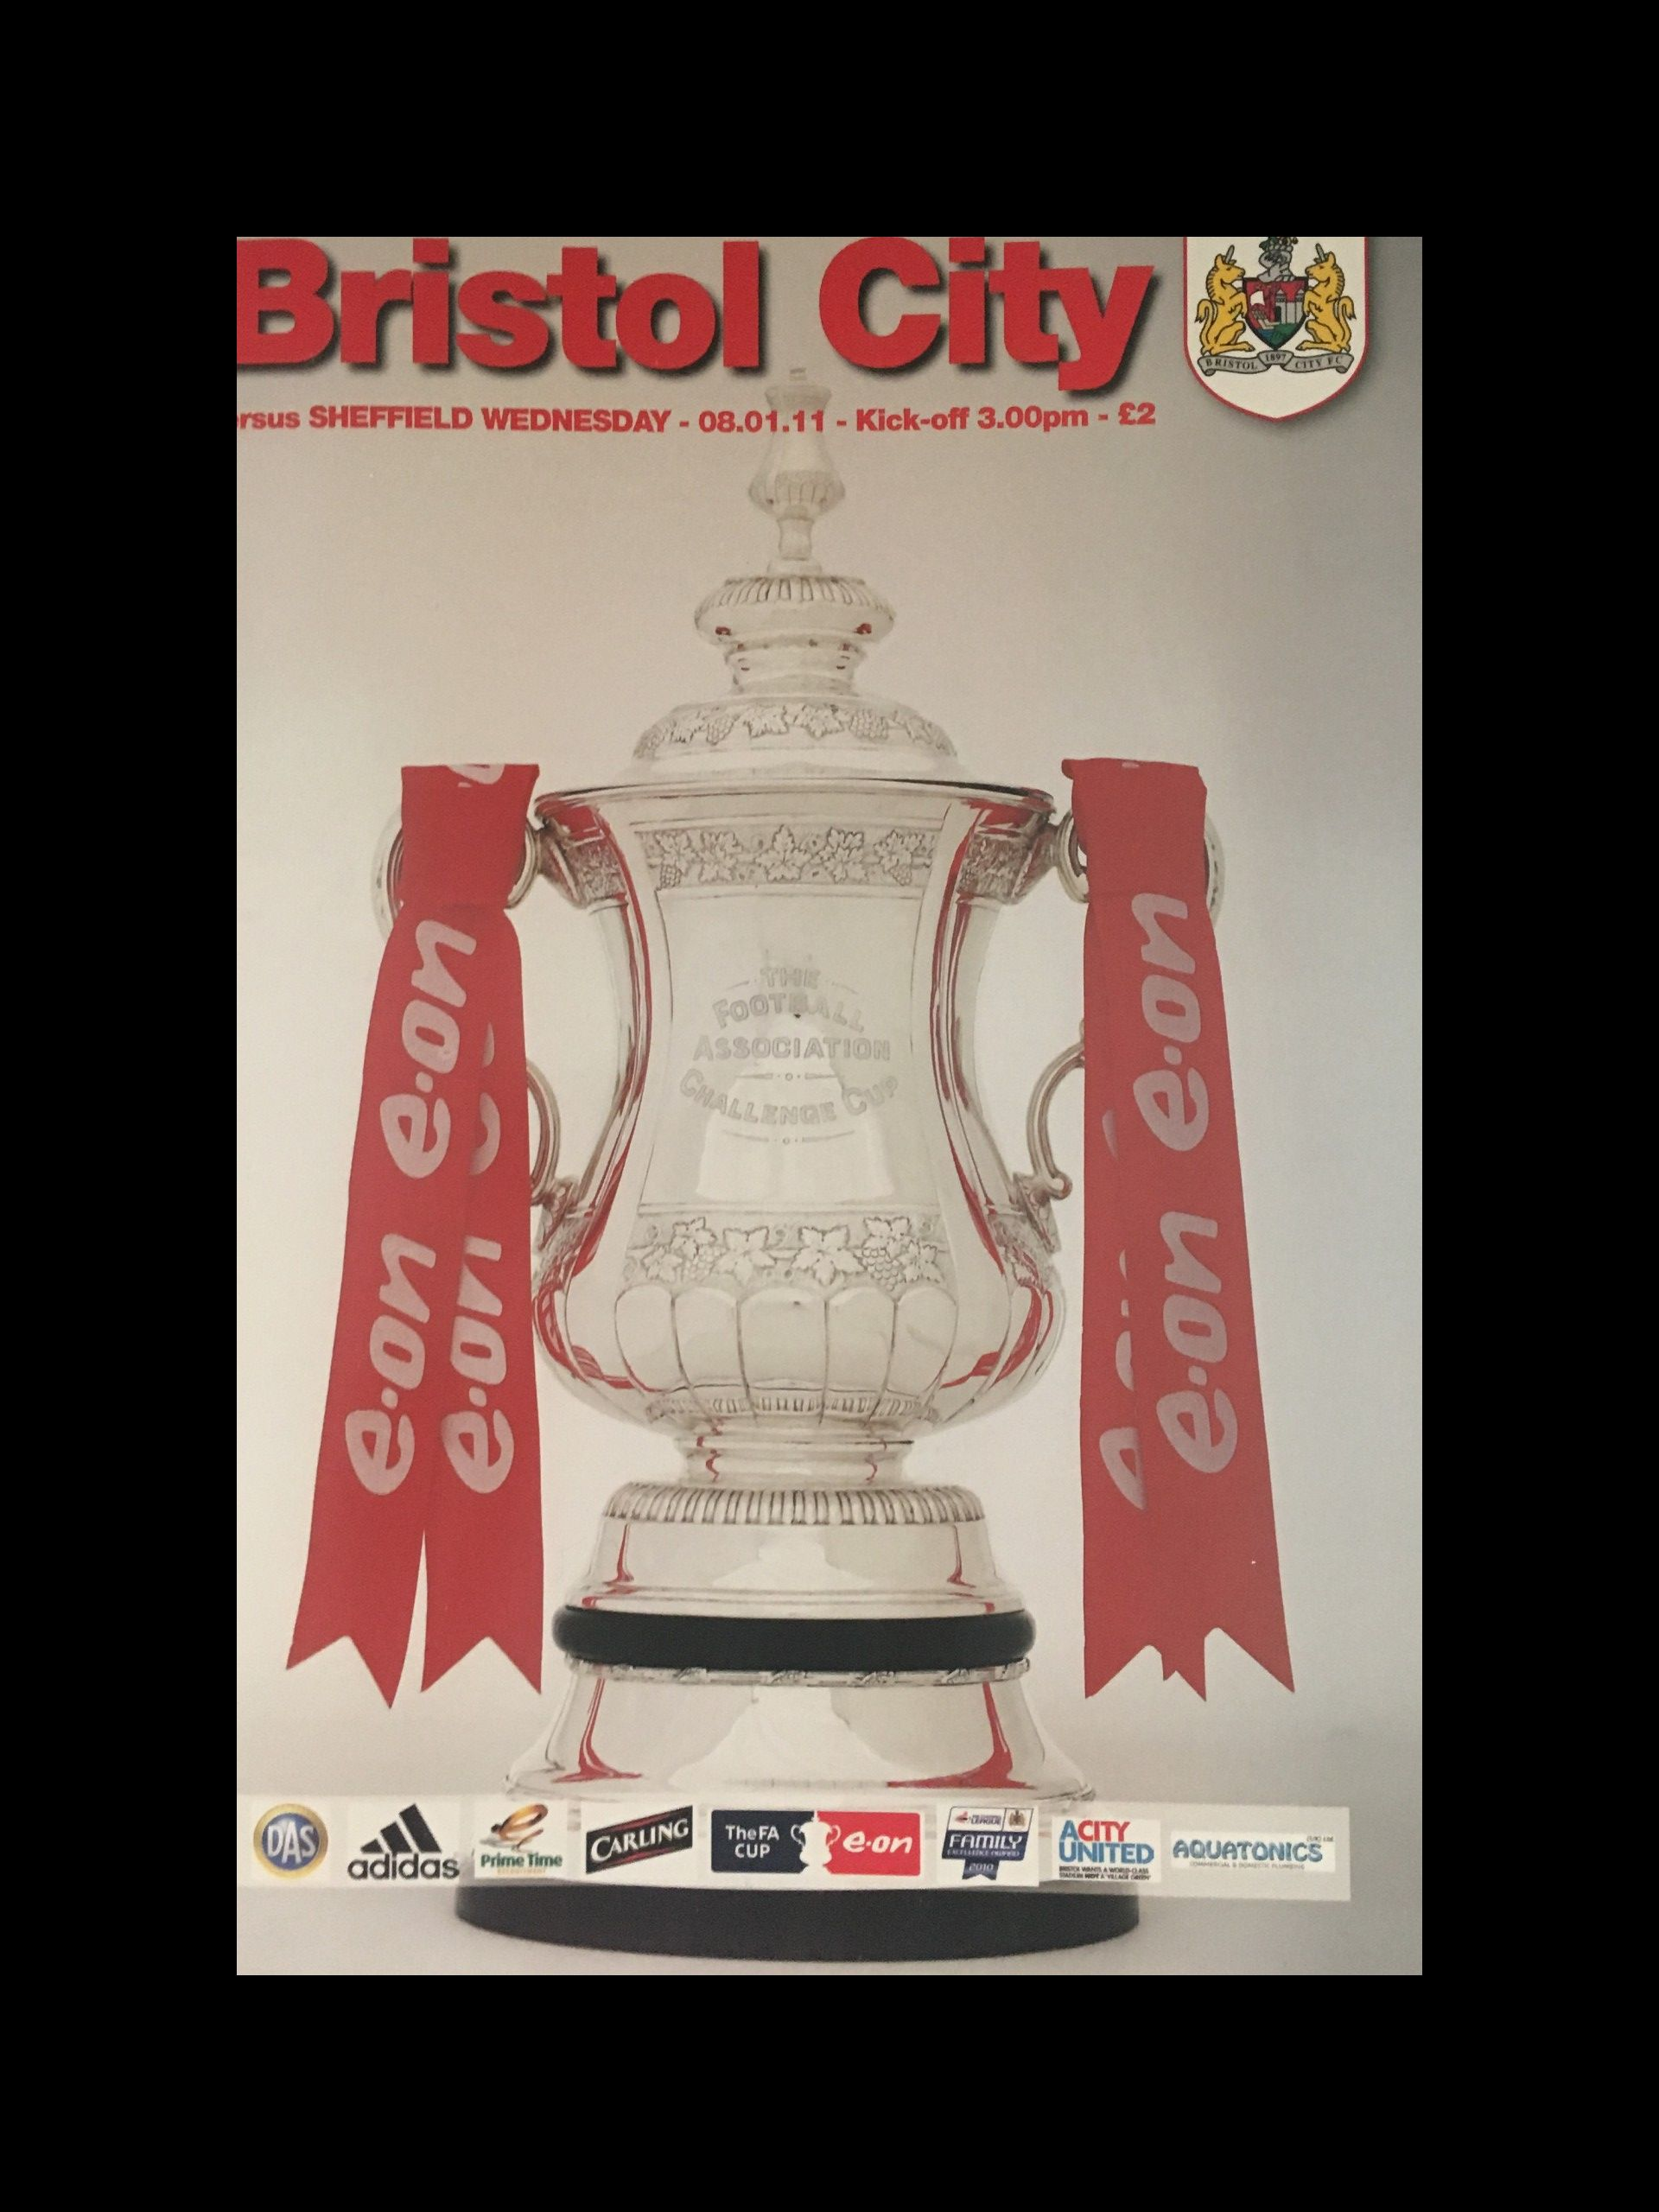 Bristol City v Sheffield Wednesday 08-01-2011 Programme